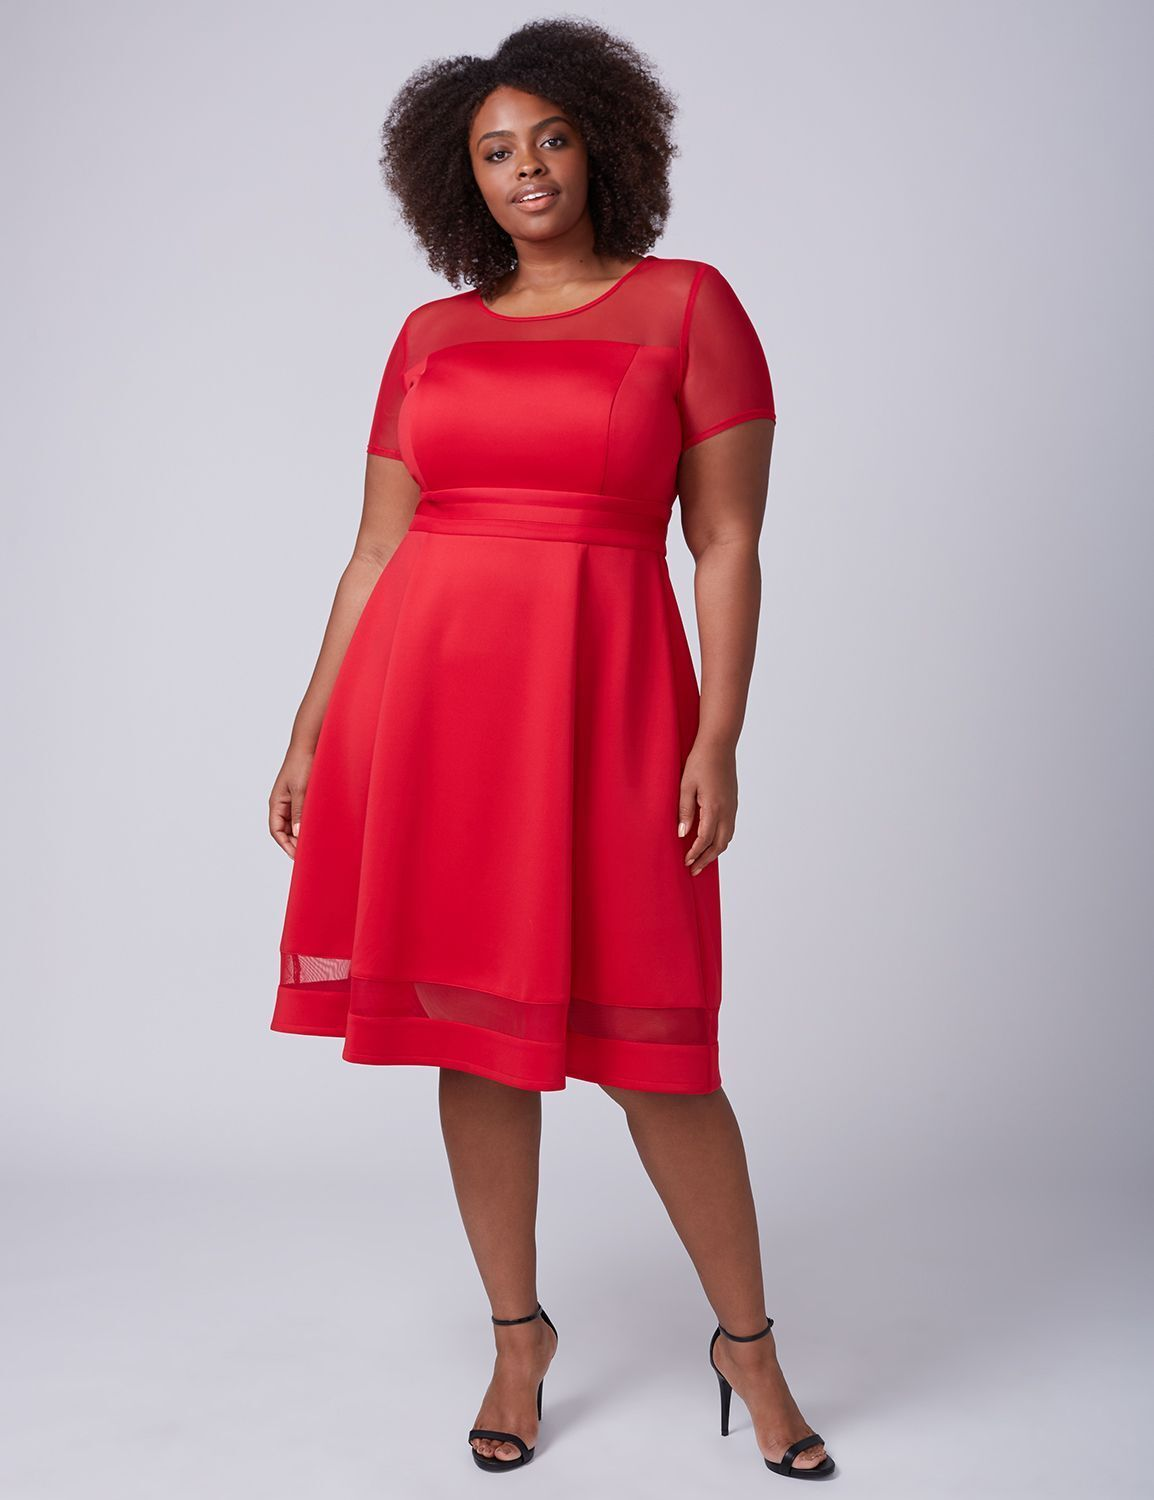 NEW LANE BRYANT PLUS SIZE RED MESH SLEEVE SCUBA FIT & FLARE DRESS SZ 14 16